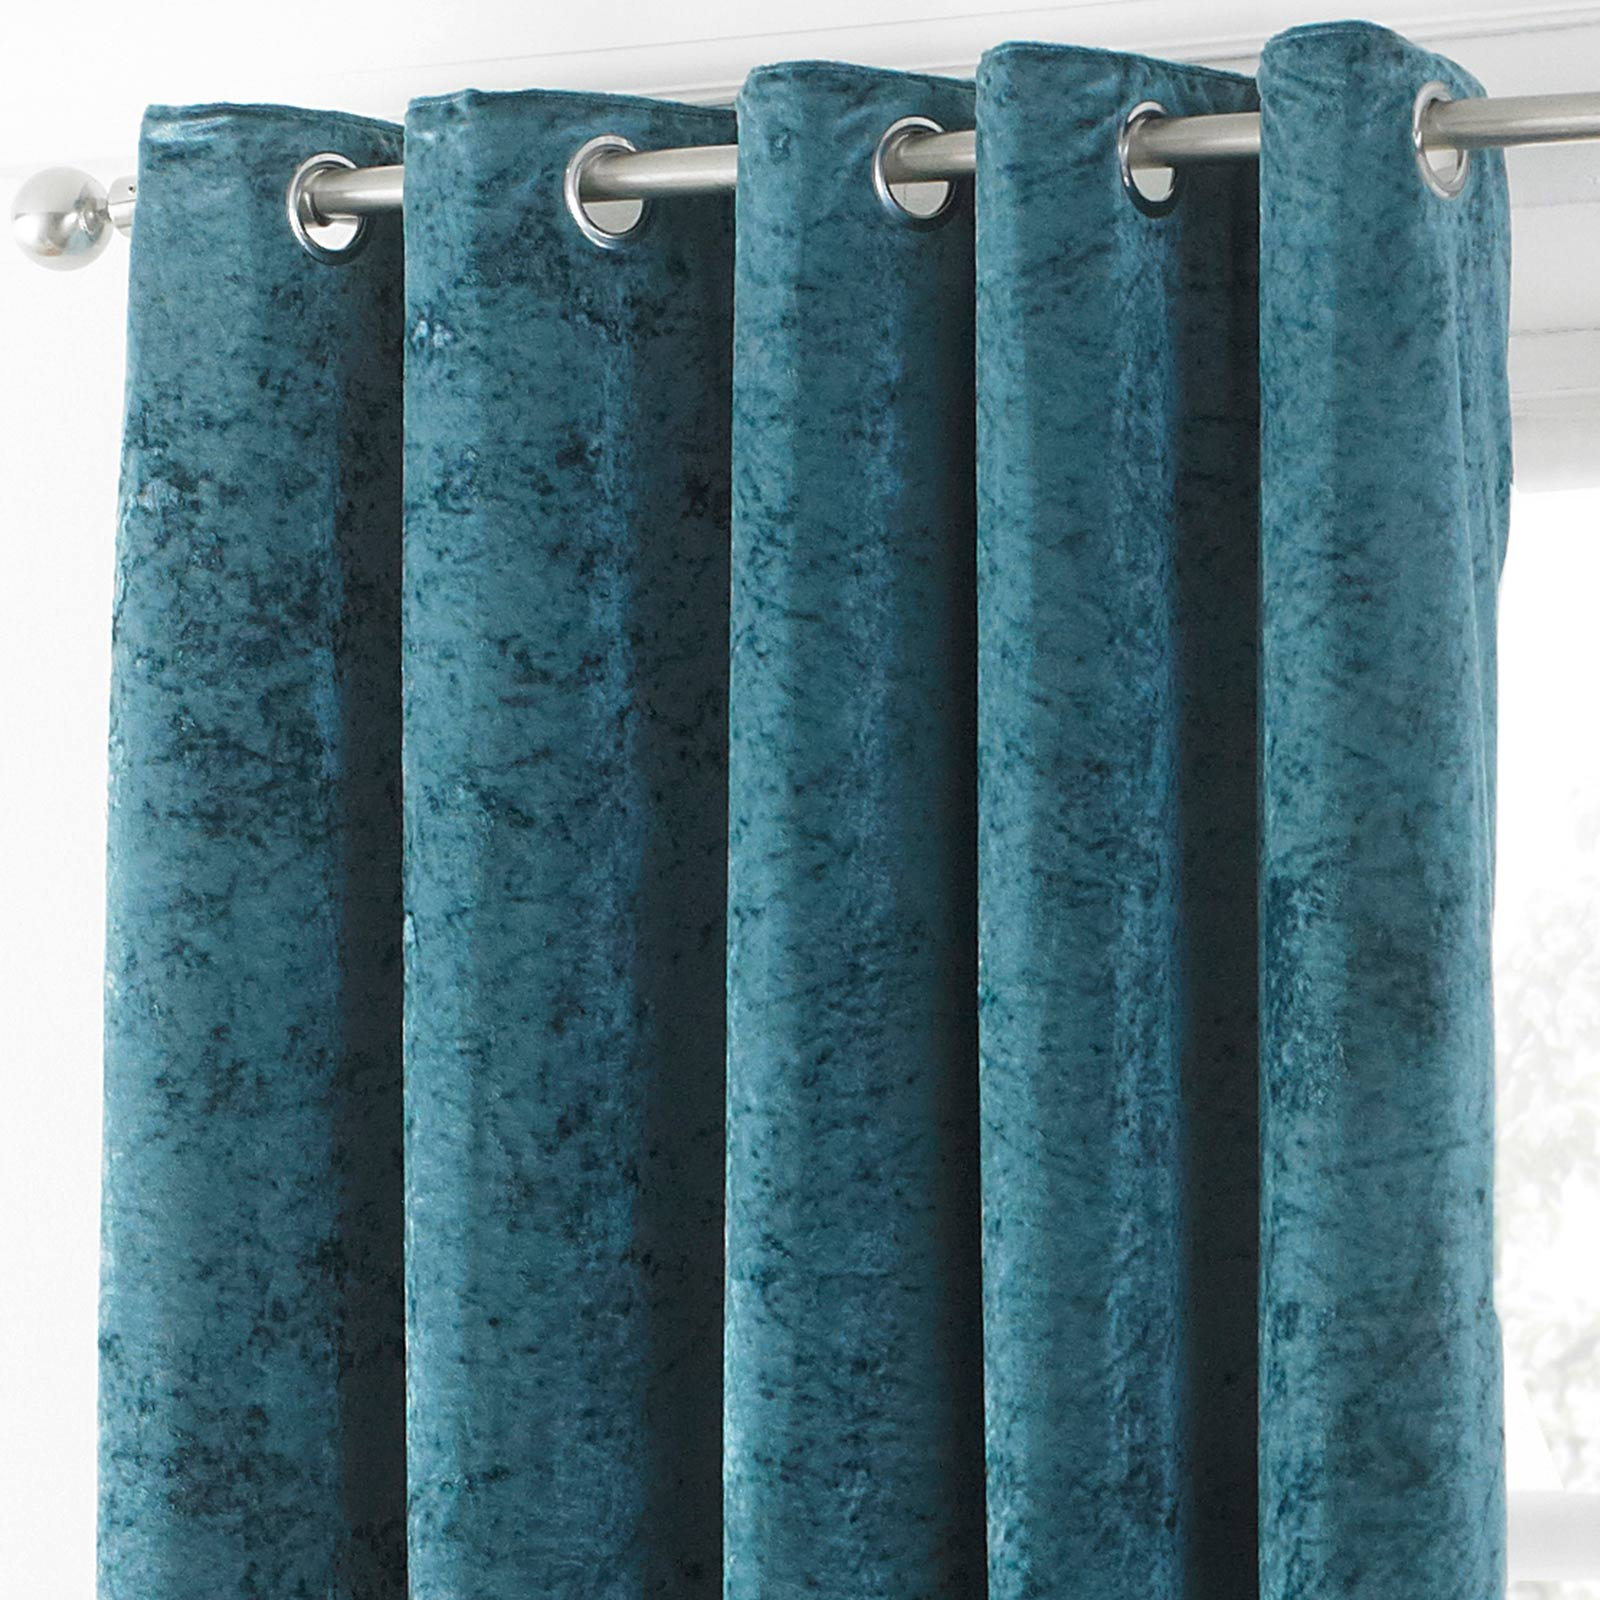 Verona Crushed Velvet Lined Eyelet Curtains Teal -  - Ideal Textiles